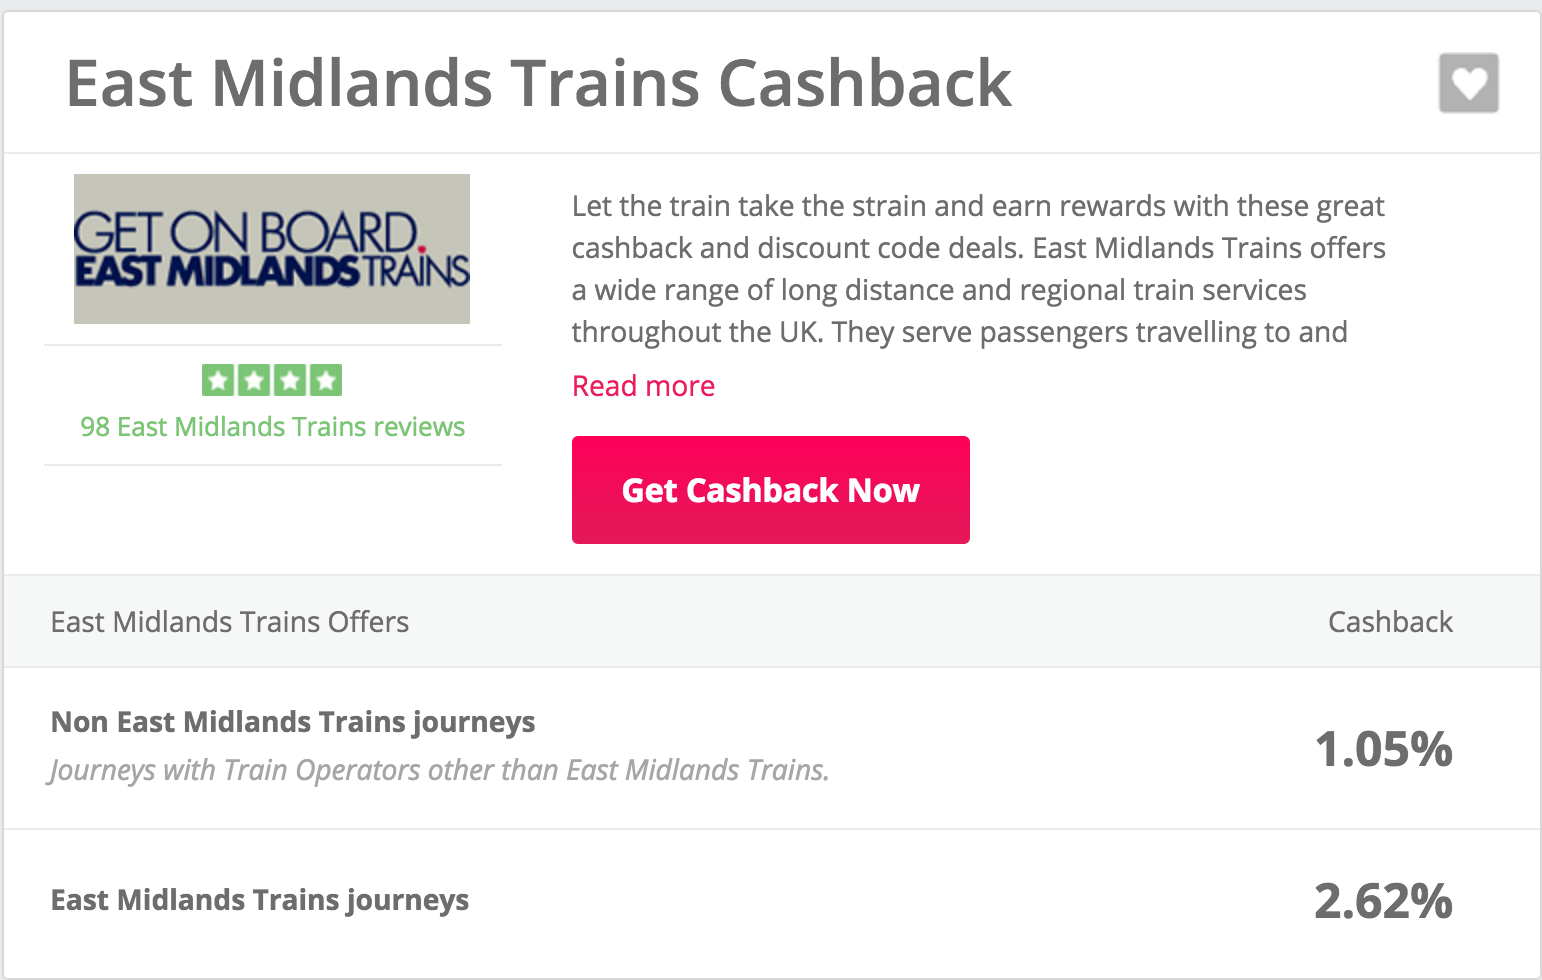 East Midlands Trains cashback